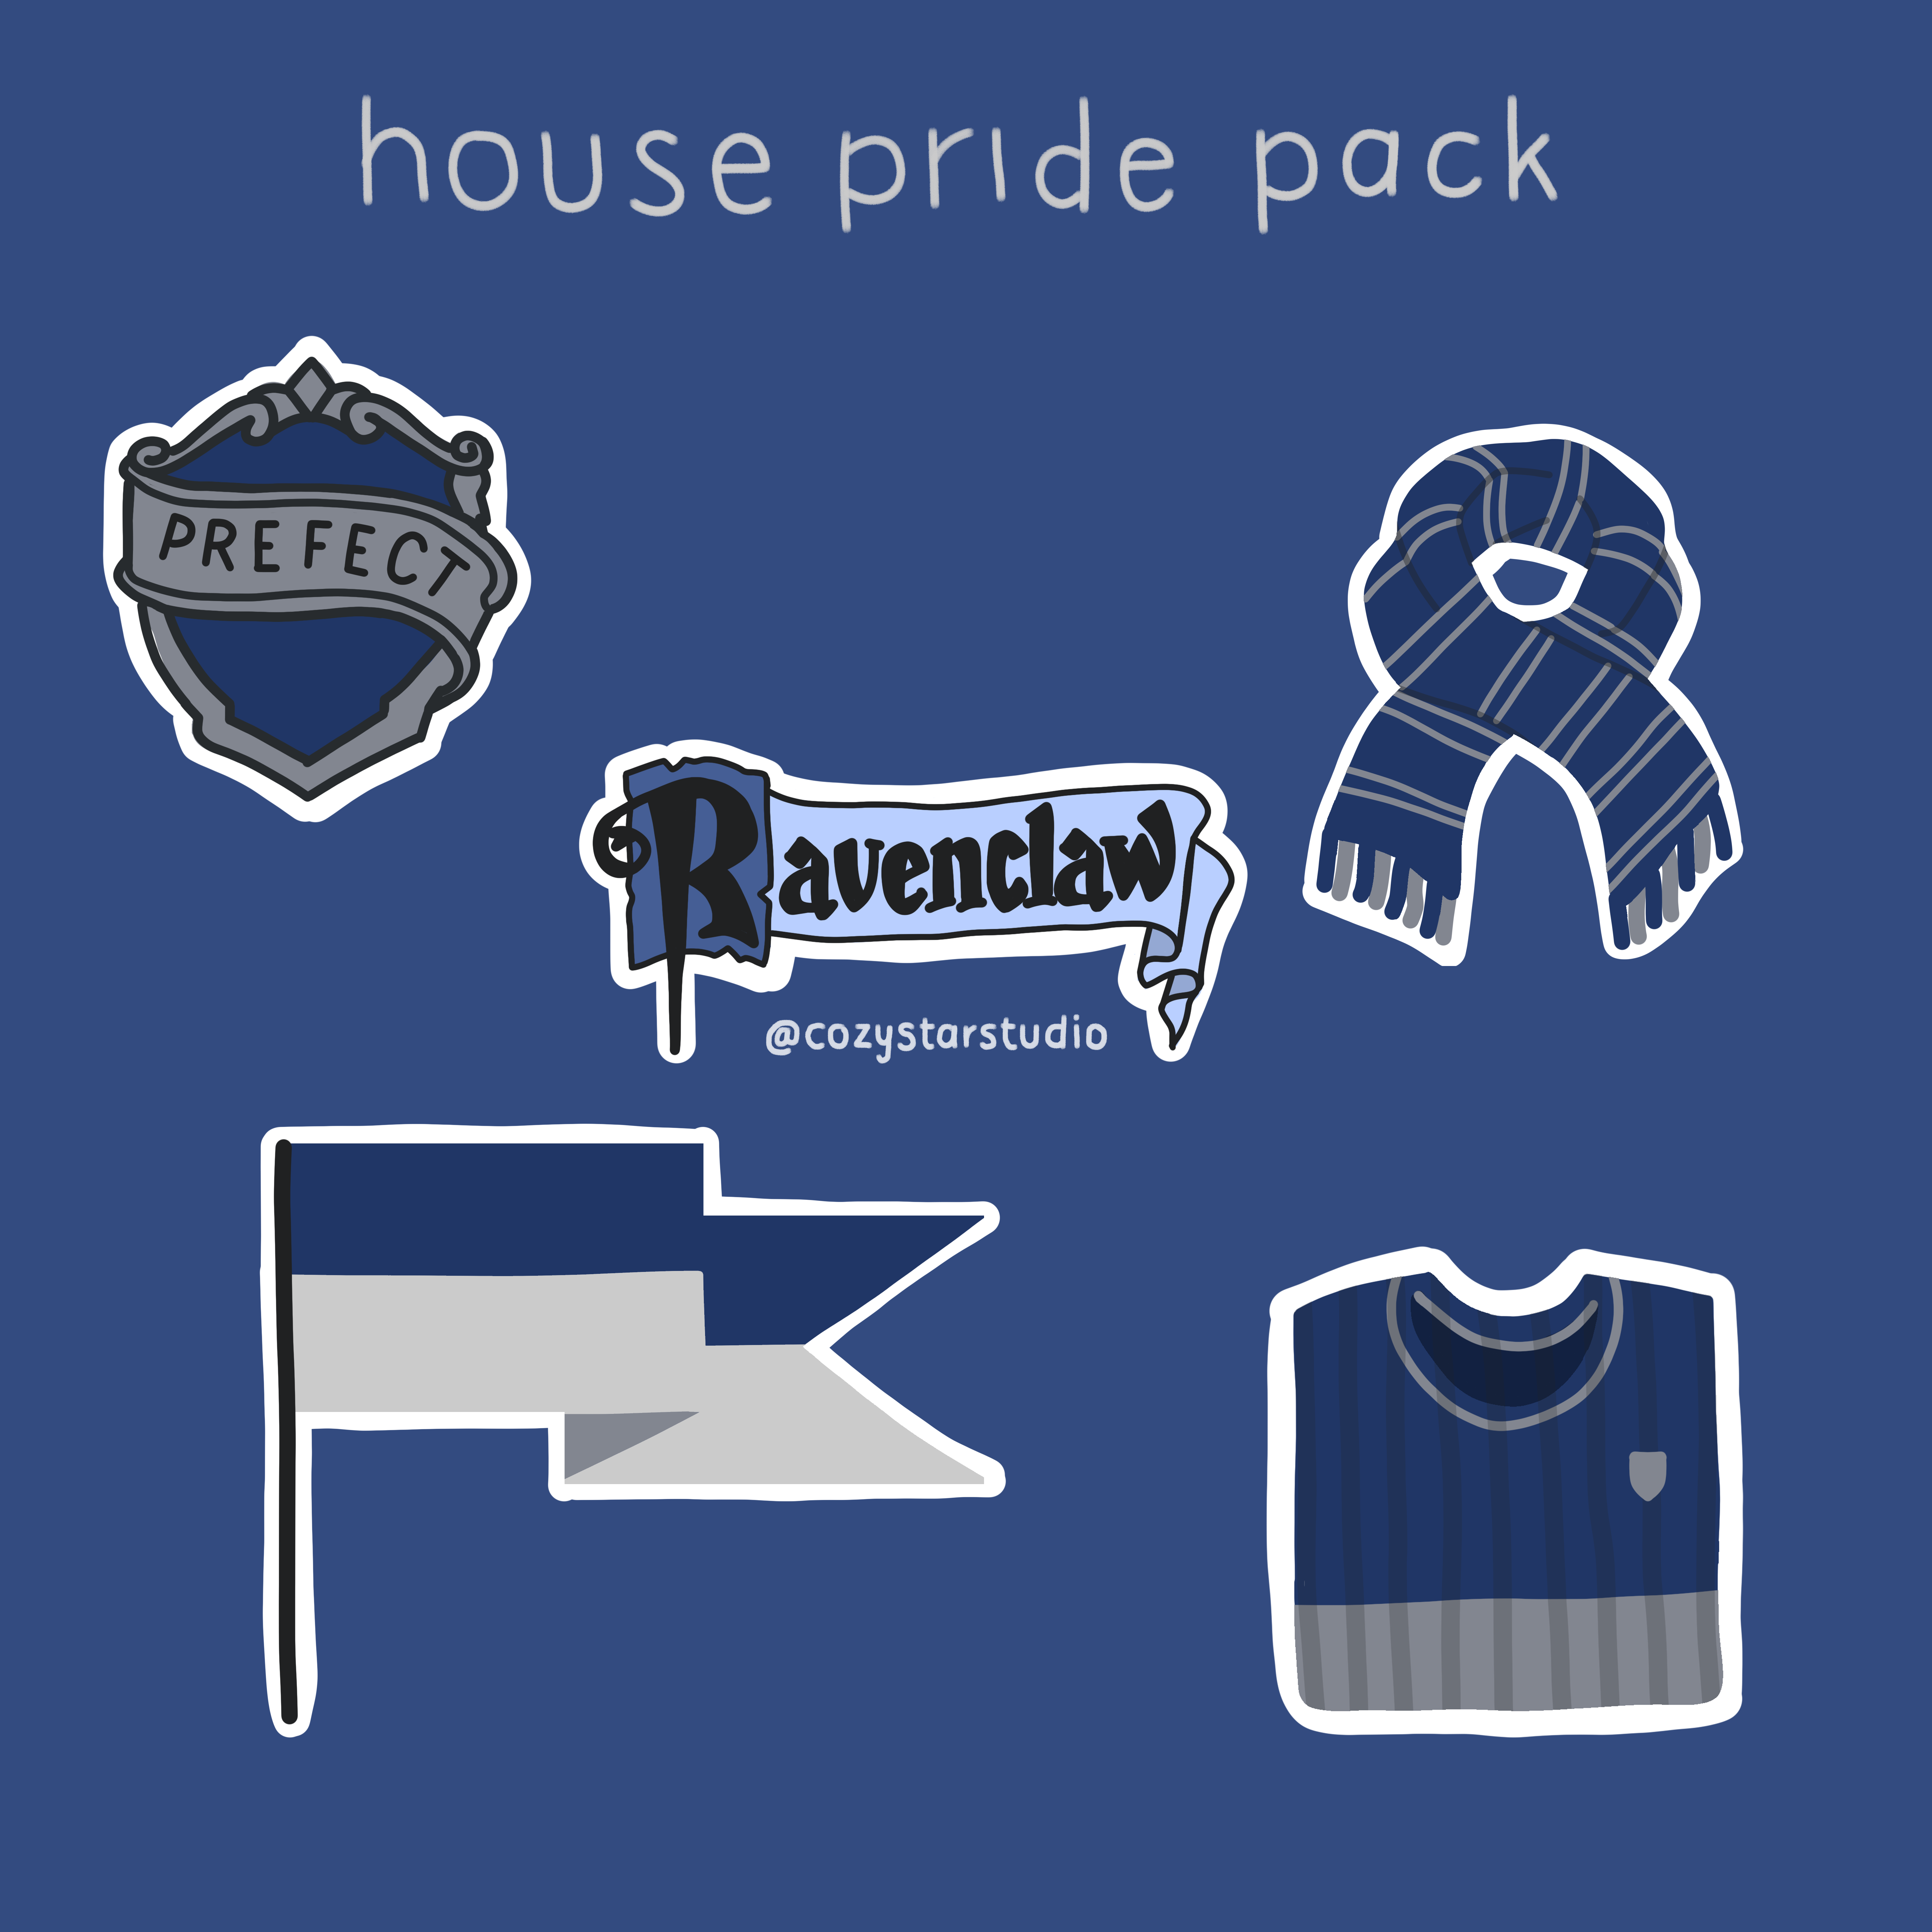 Hogwarts House Sticker Pack Harry Potter Stickers Ravenclaw Stickers Gryffindor Stickers Slytherin Stickers Hufflepuff Stickers In 2021 Harry Potter Stickers Cute Stickers Cute Harry Potter